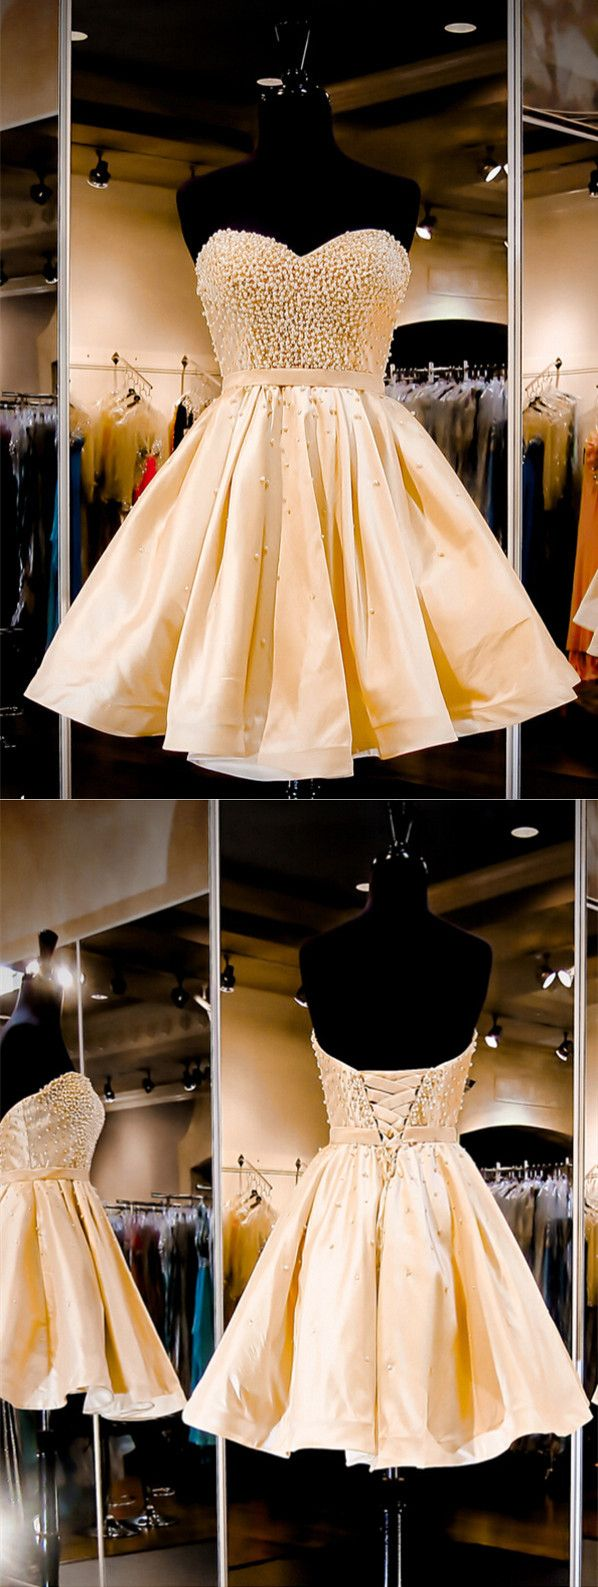 357 Best Roupad Images On Pinterest Homecoming Dresses Low Cut Minimal Flare Pastel Dress Peach Grey Fs Putih S 2016 Dresseshomecoming Dressesshort Prom Dressescheap Champagne